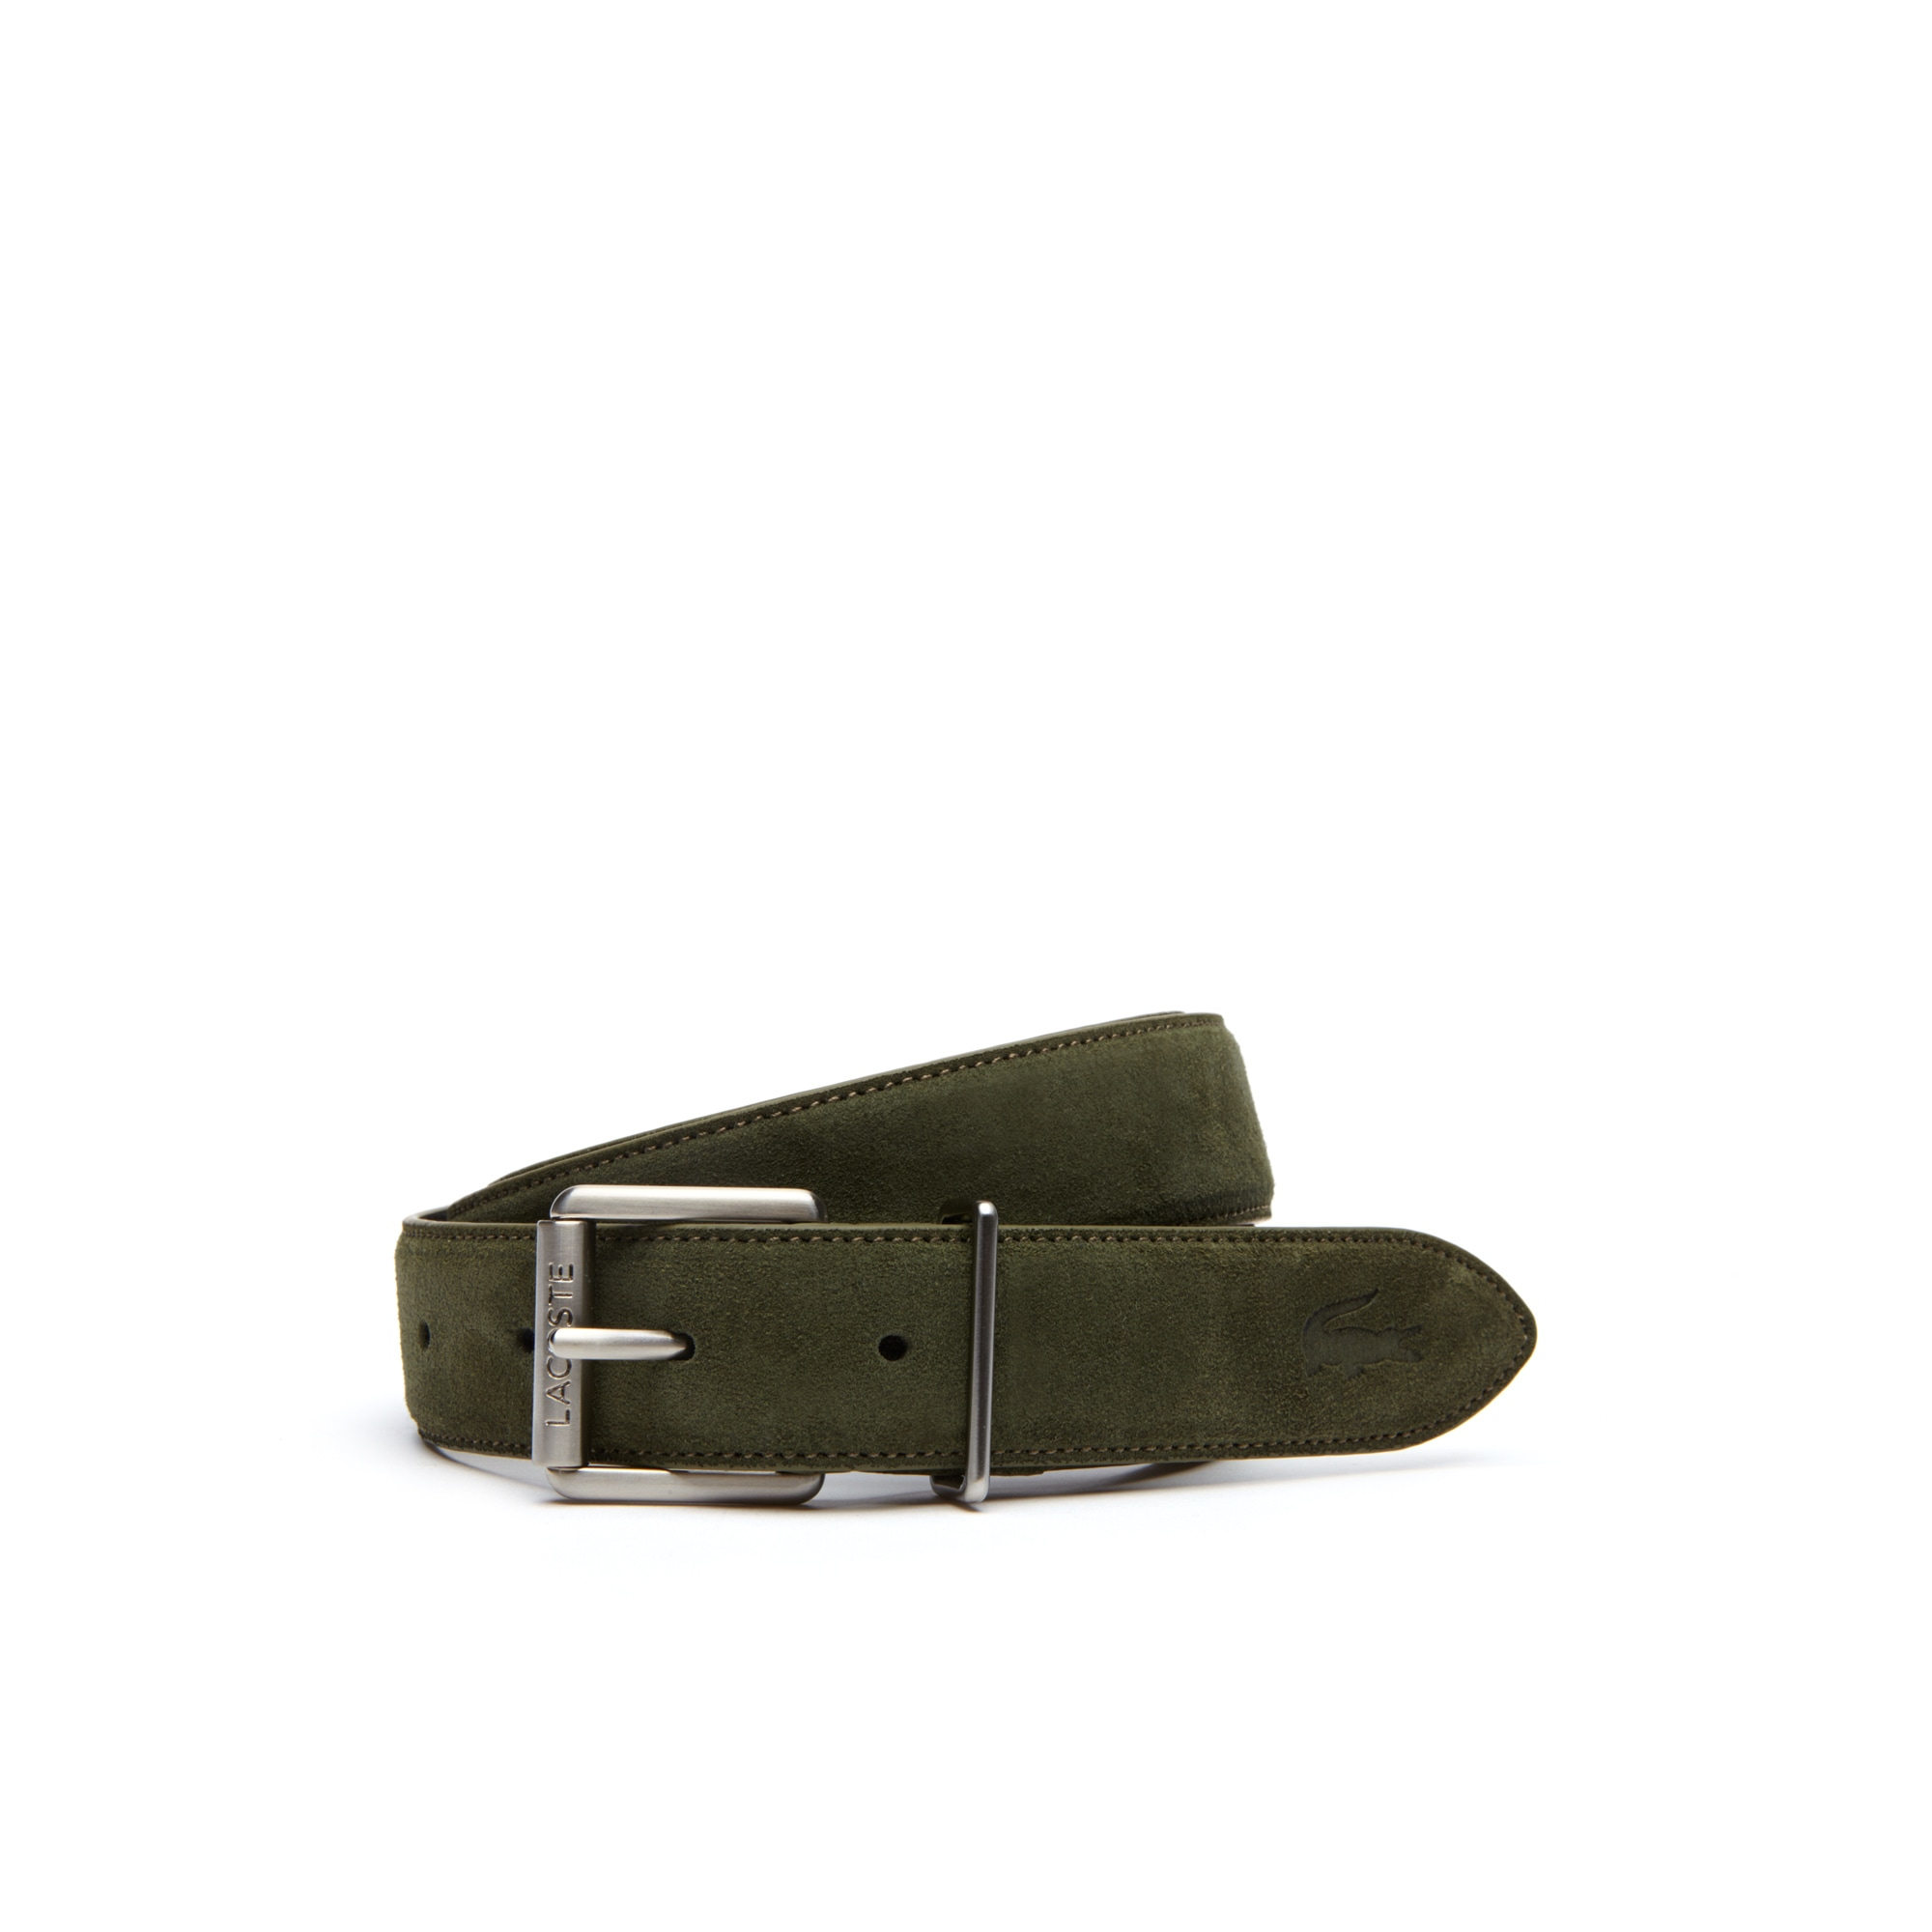 라코스테 벨트 Lacoste Mens Tongue Buckle Suede-Style Leather Belt,khaki